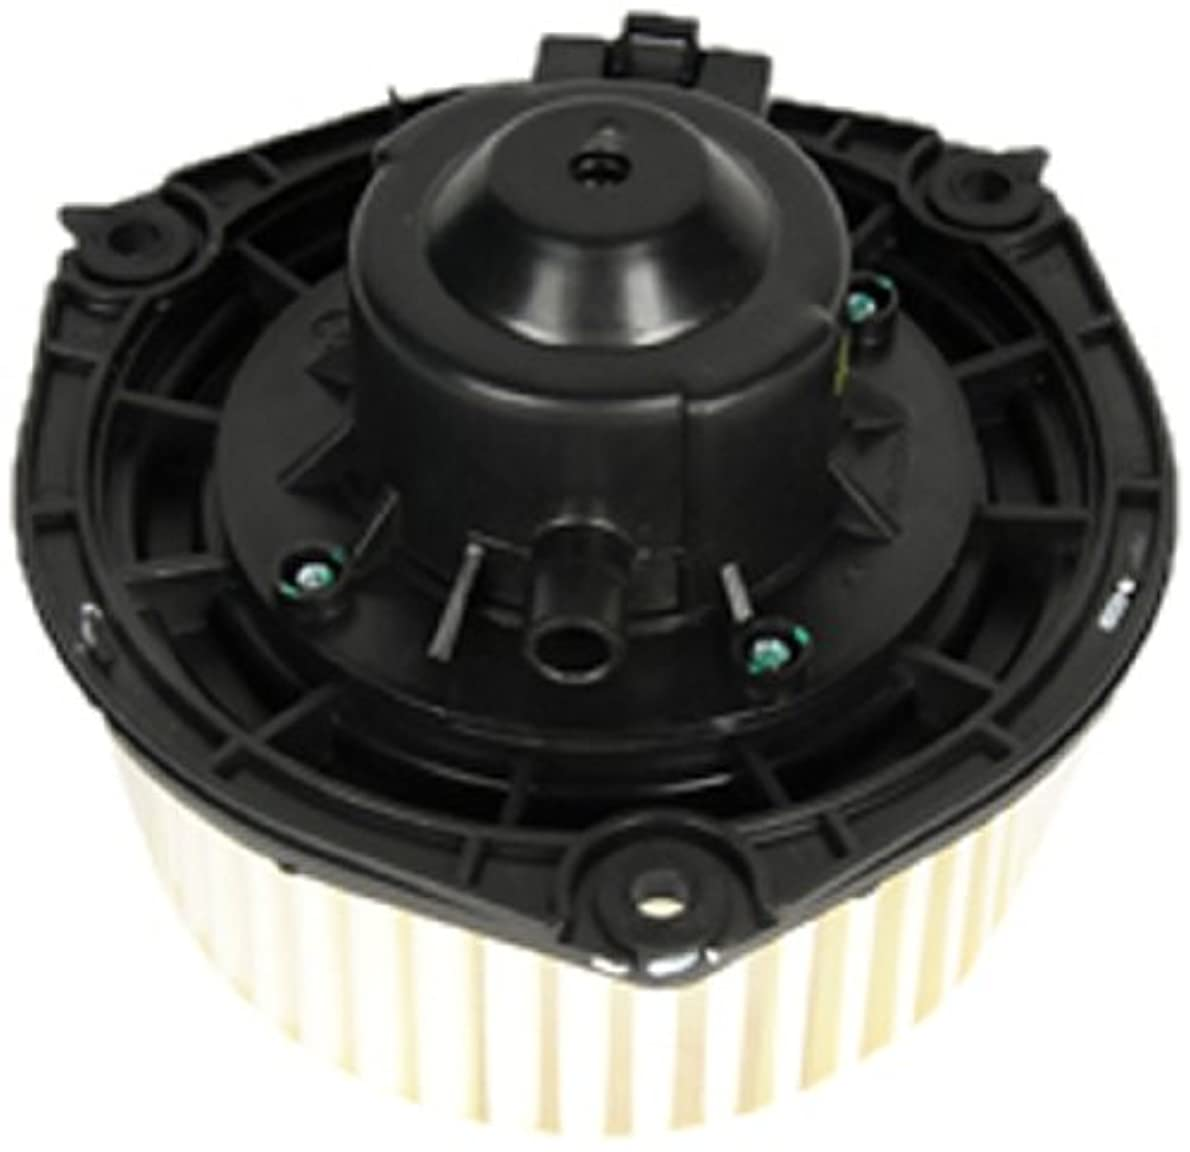 ACDelco 15-80511 GM Original Equipment Heating and Air Conditioning Blower Motor with Wheel xkxywn6527